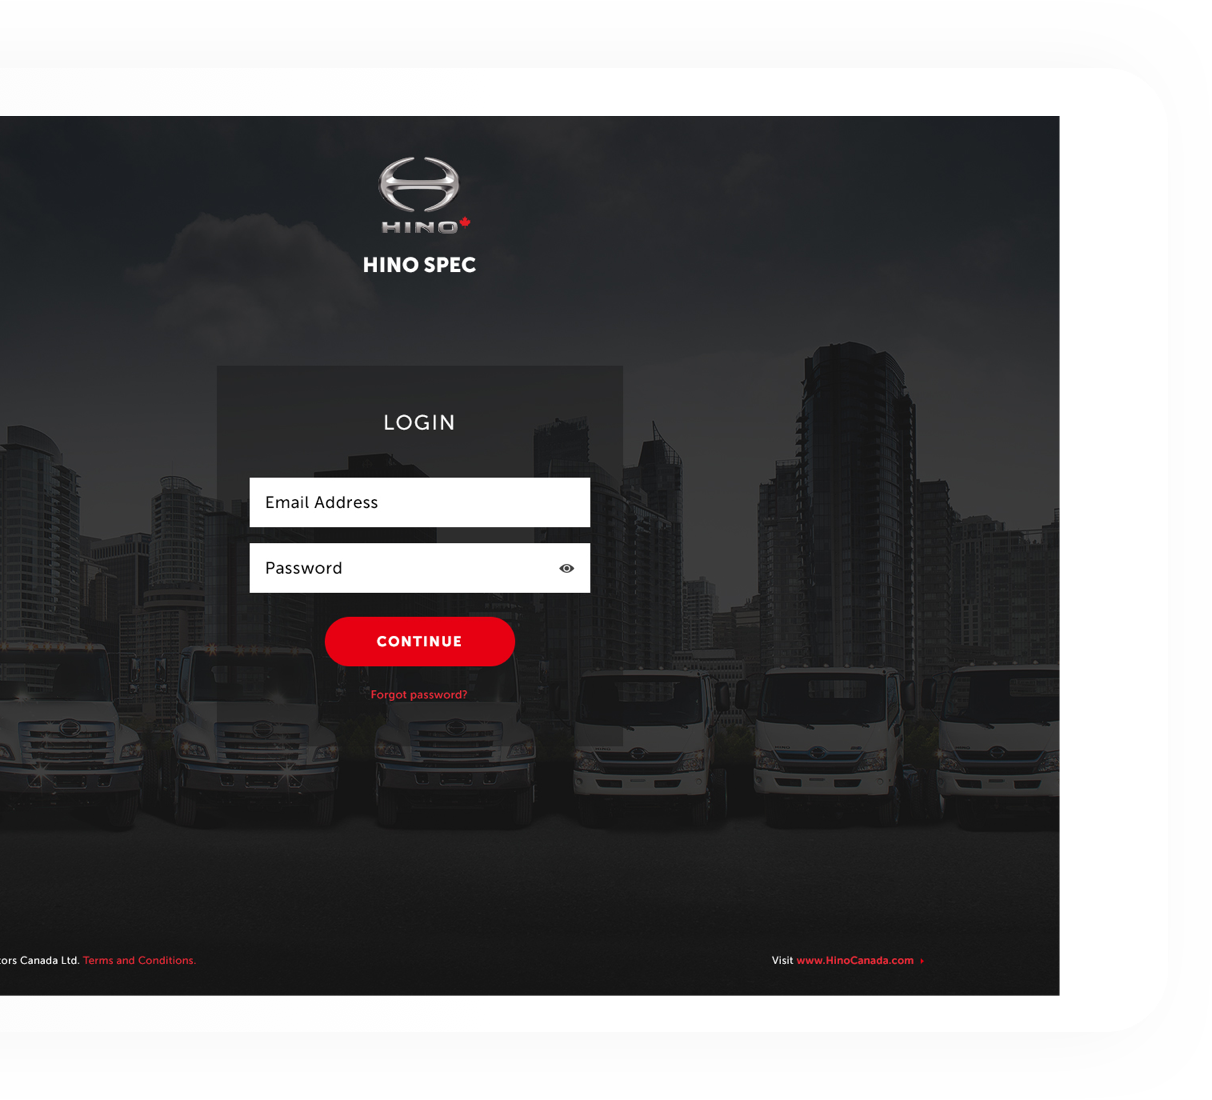 Hino Motors website loaded on the desktop to show the login page